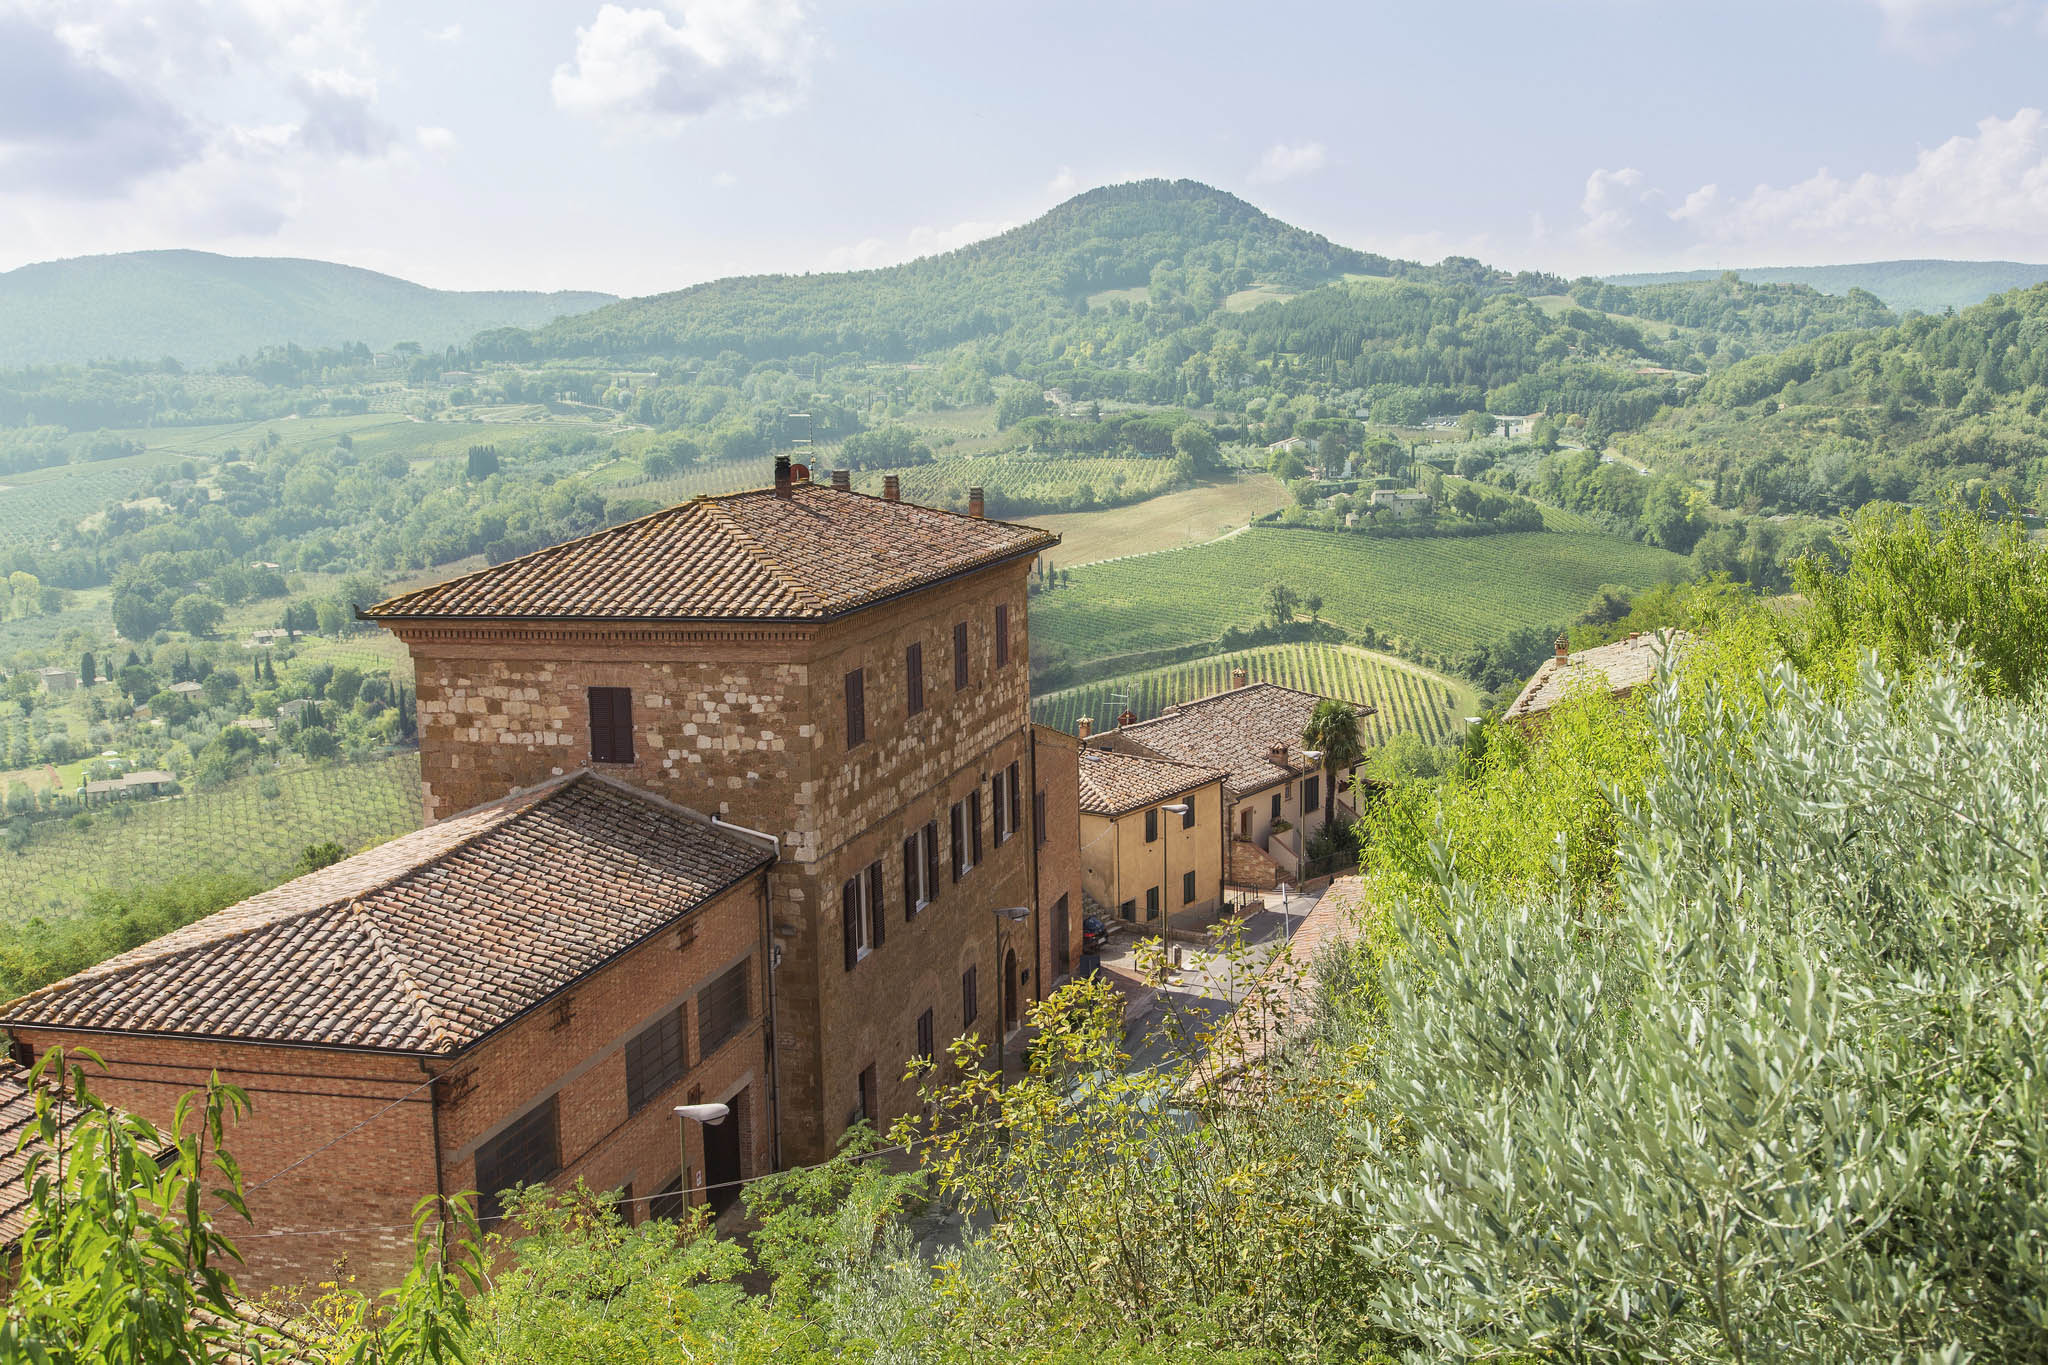 """Montepulciano"" by Rino Peroni via Flickr Creative Commons"